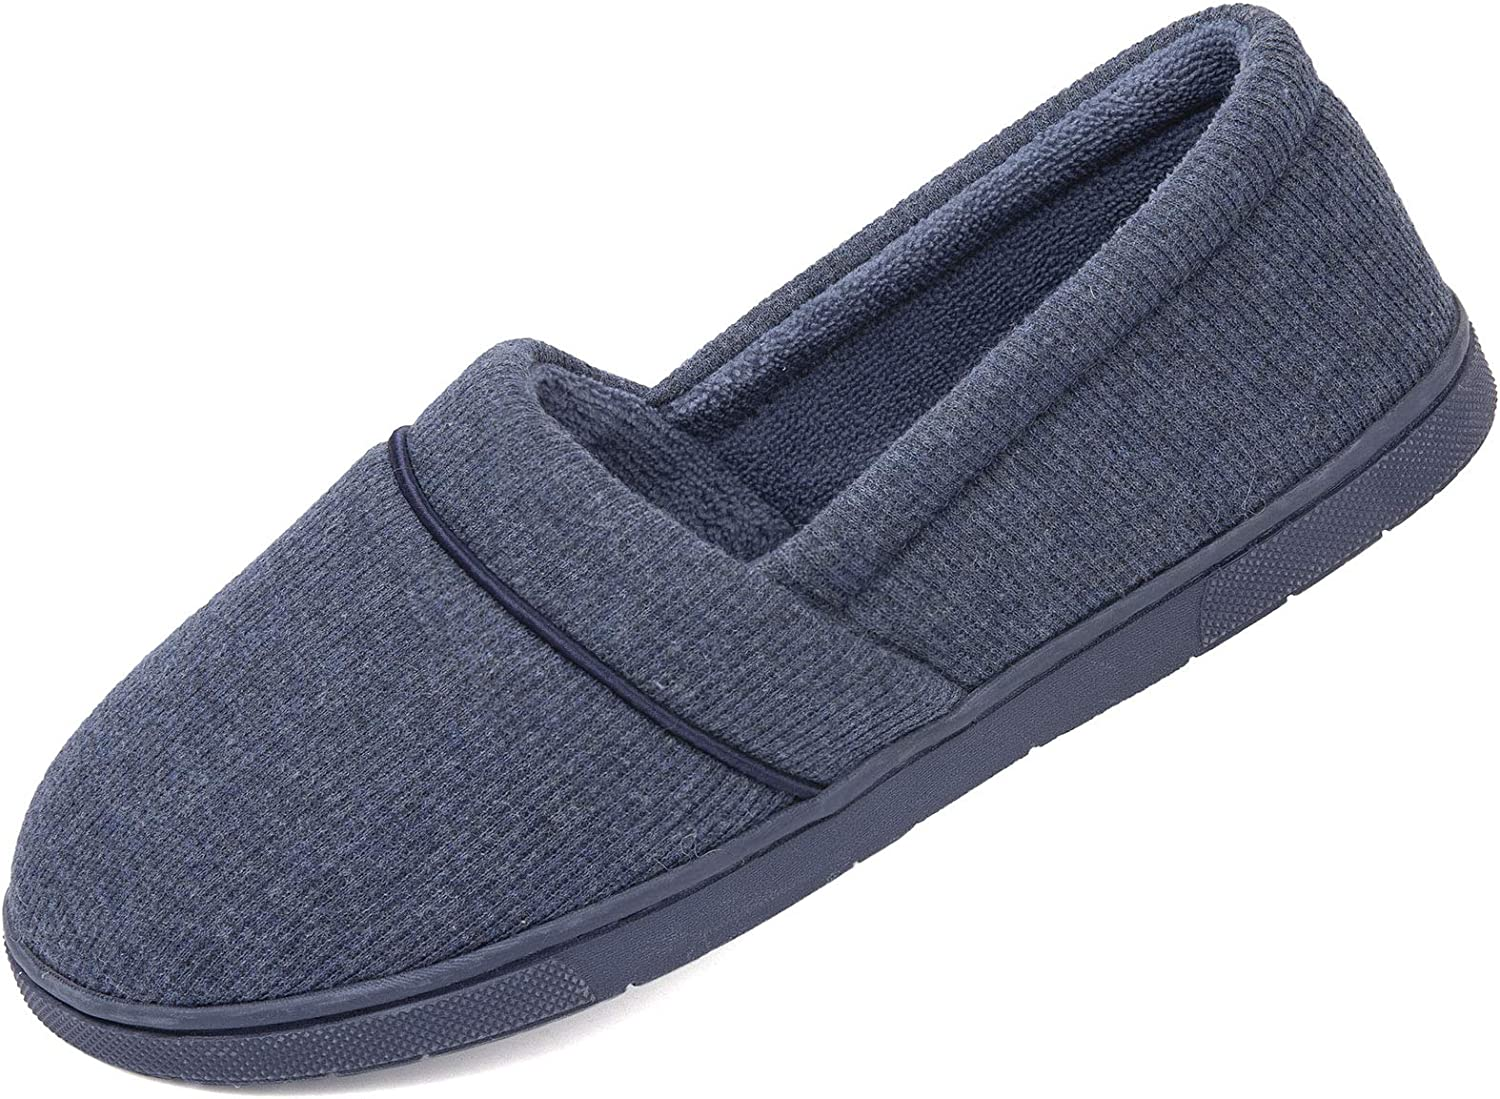 ULTRAIDEAS Women's Comfy Memory Foam Cotton Knit Slippers, Ladies' Plush Terry Lining Loafer Lightweight House Shoes with Indoor Outdoor Anti-Skid Rubber Sole